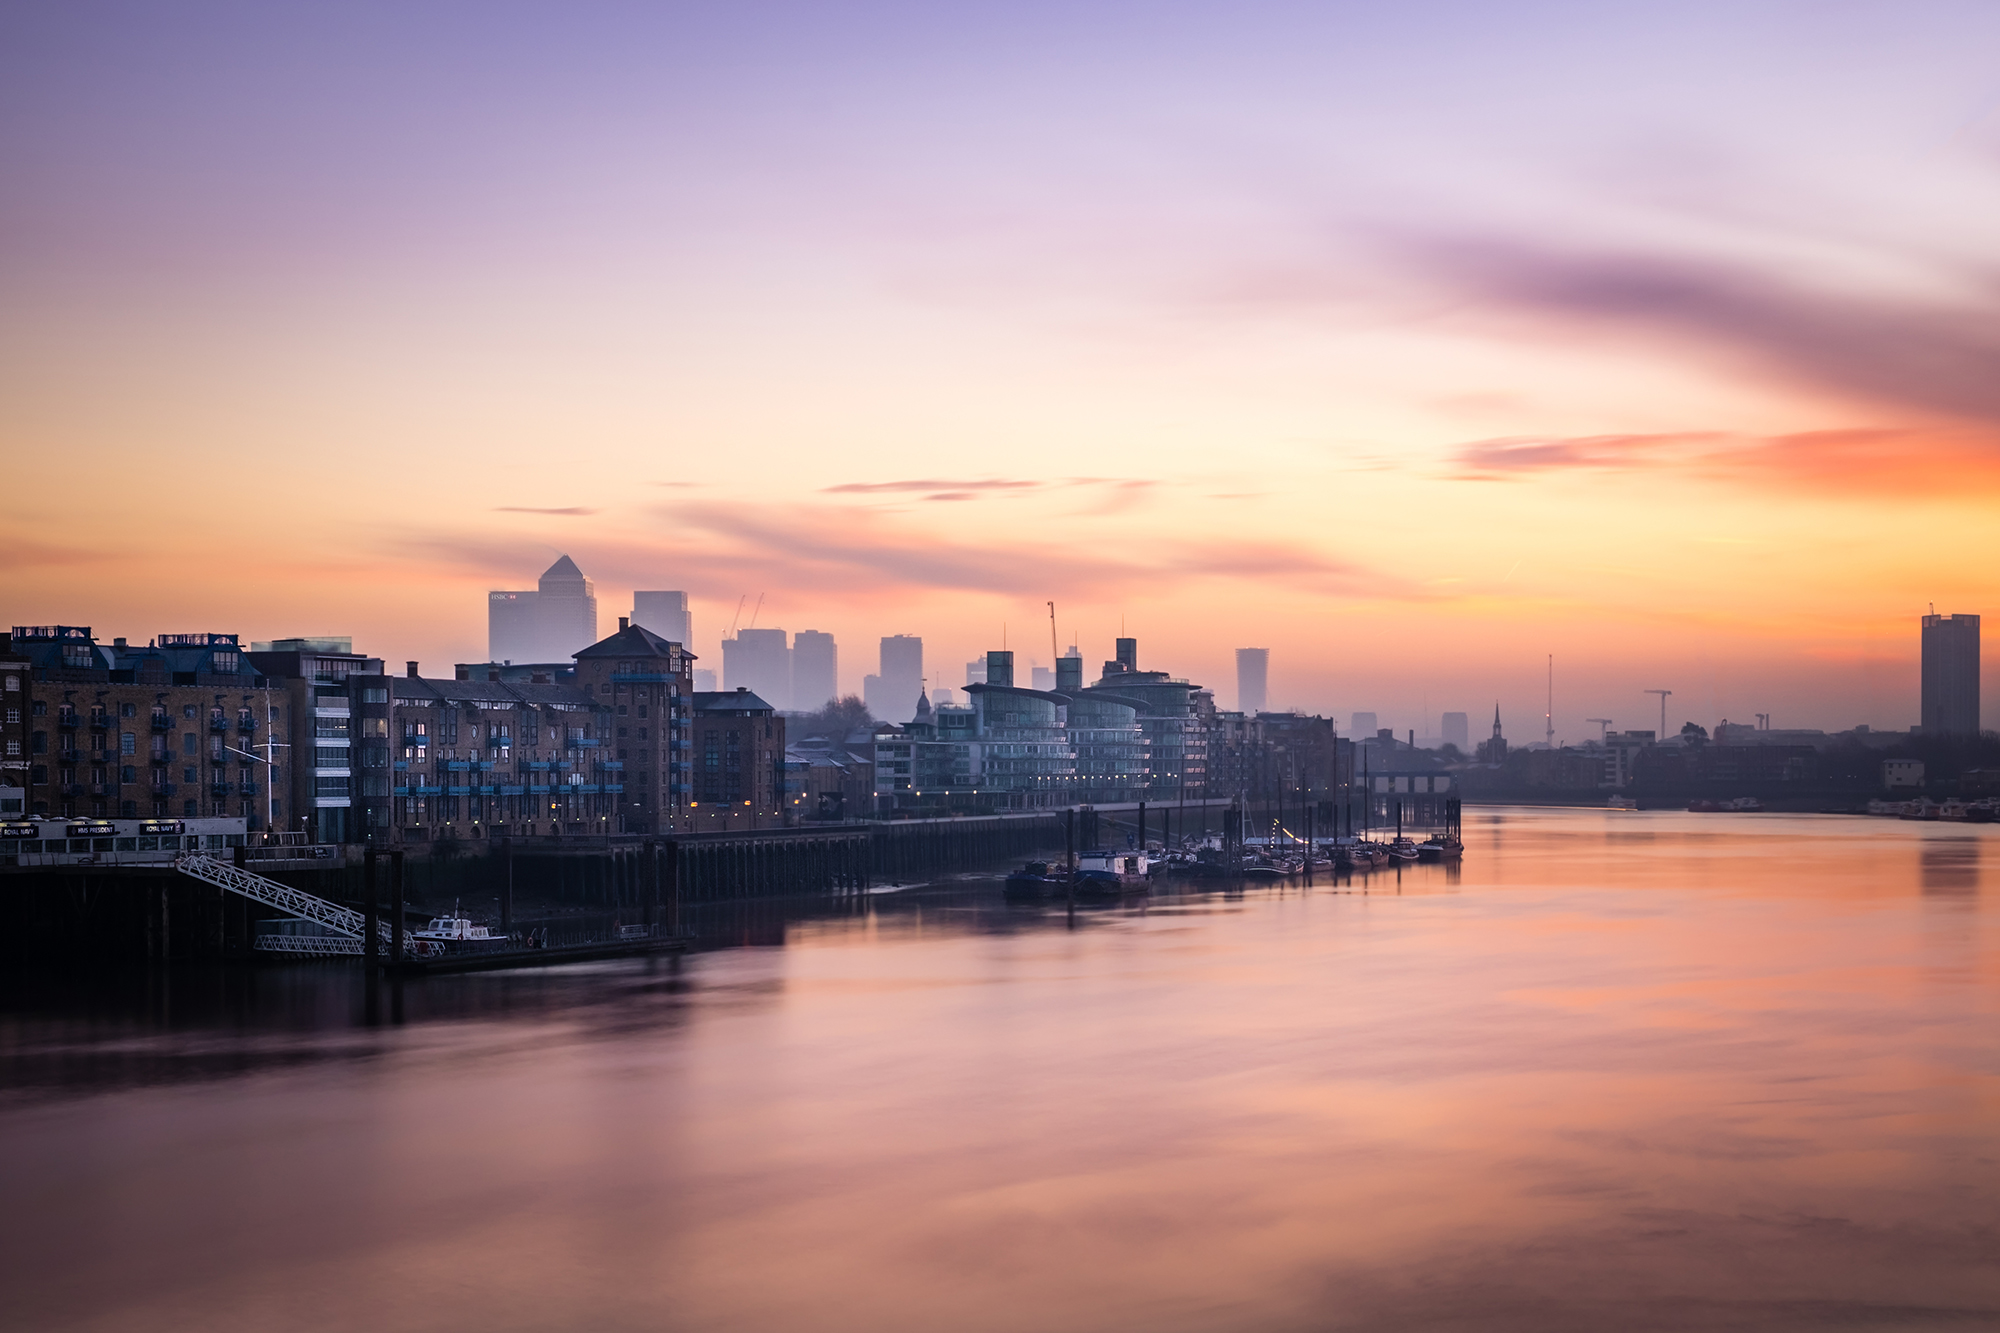 Cityscape long exposure photo of the view across East London towards Canary Wharf by Trevor Sherwin